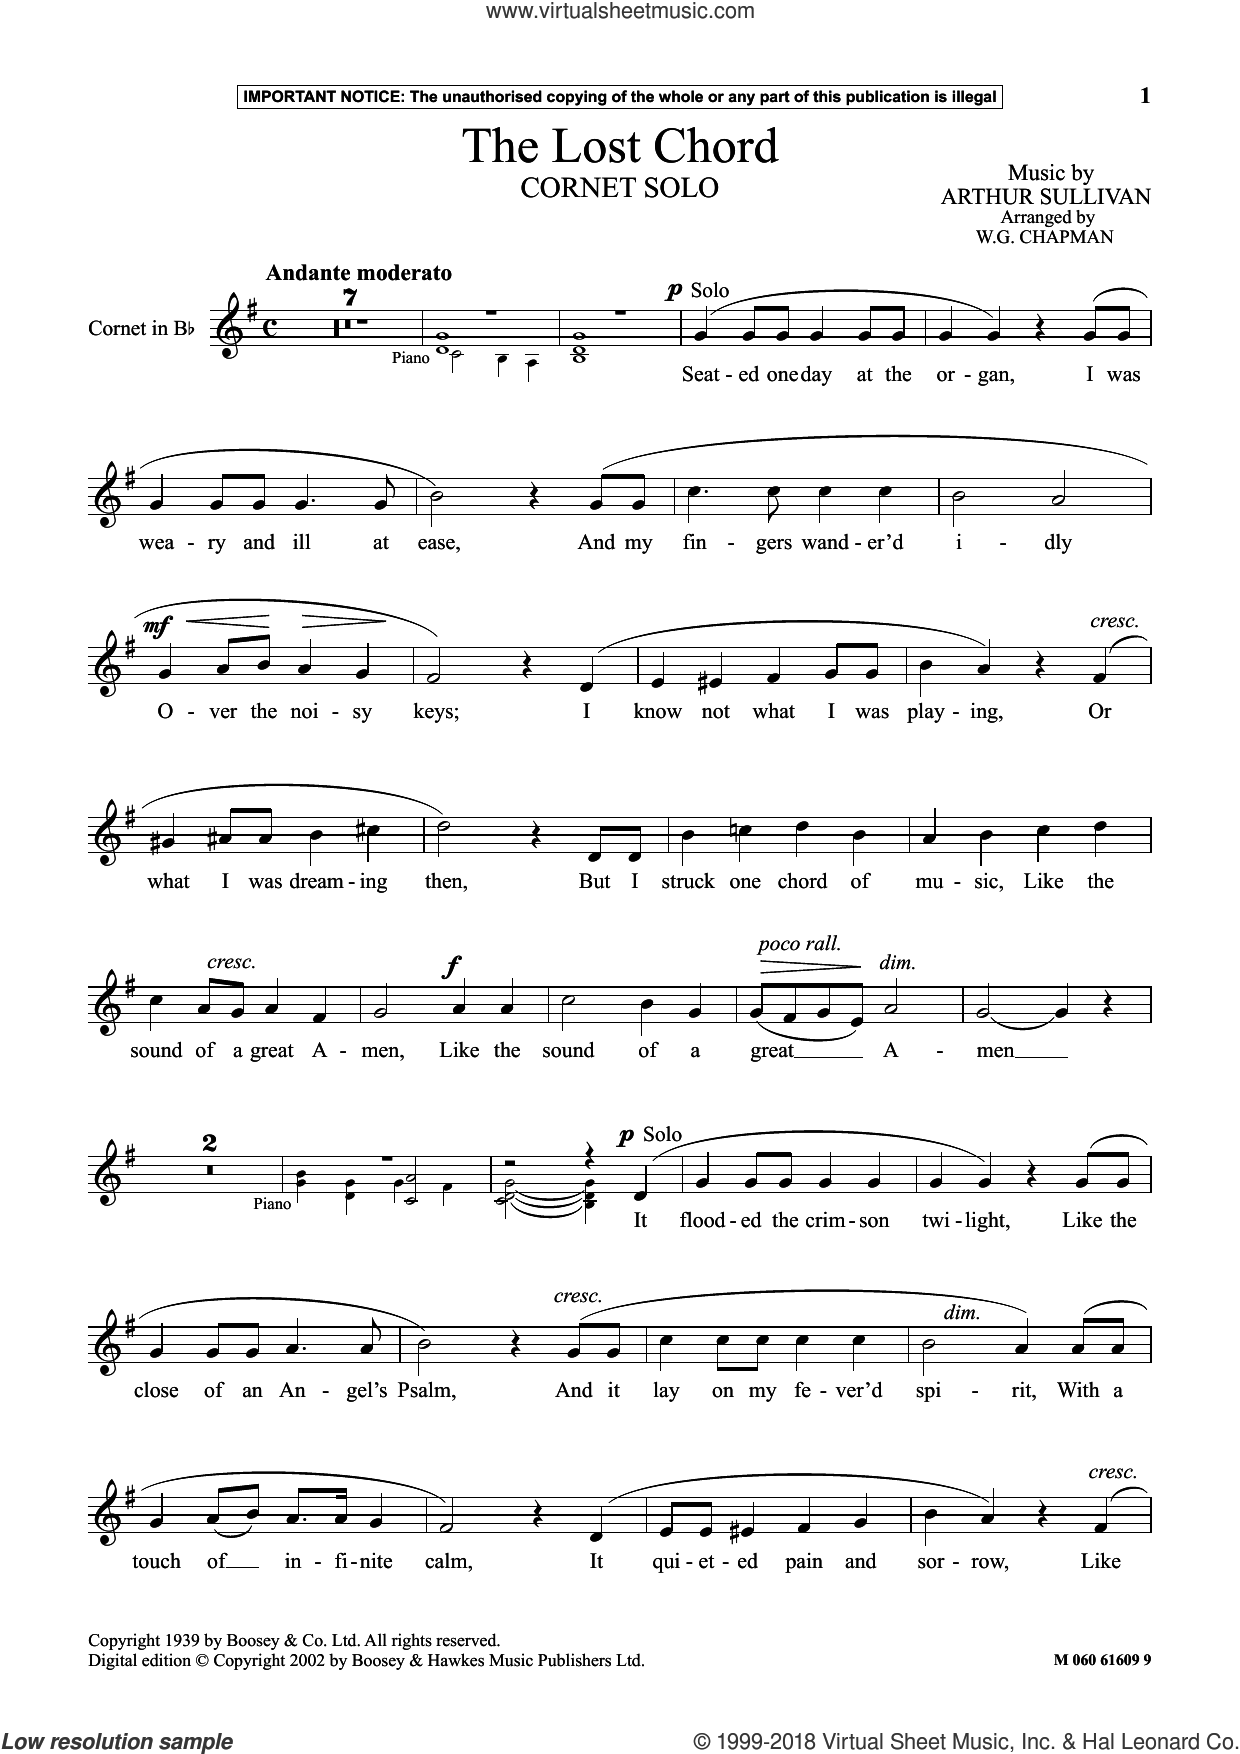 The Lost Chord sheet music for cornet solo by Arthur Sullivan and W.G. Chapman, classical score, intermediate skill level